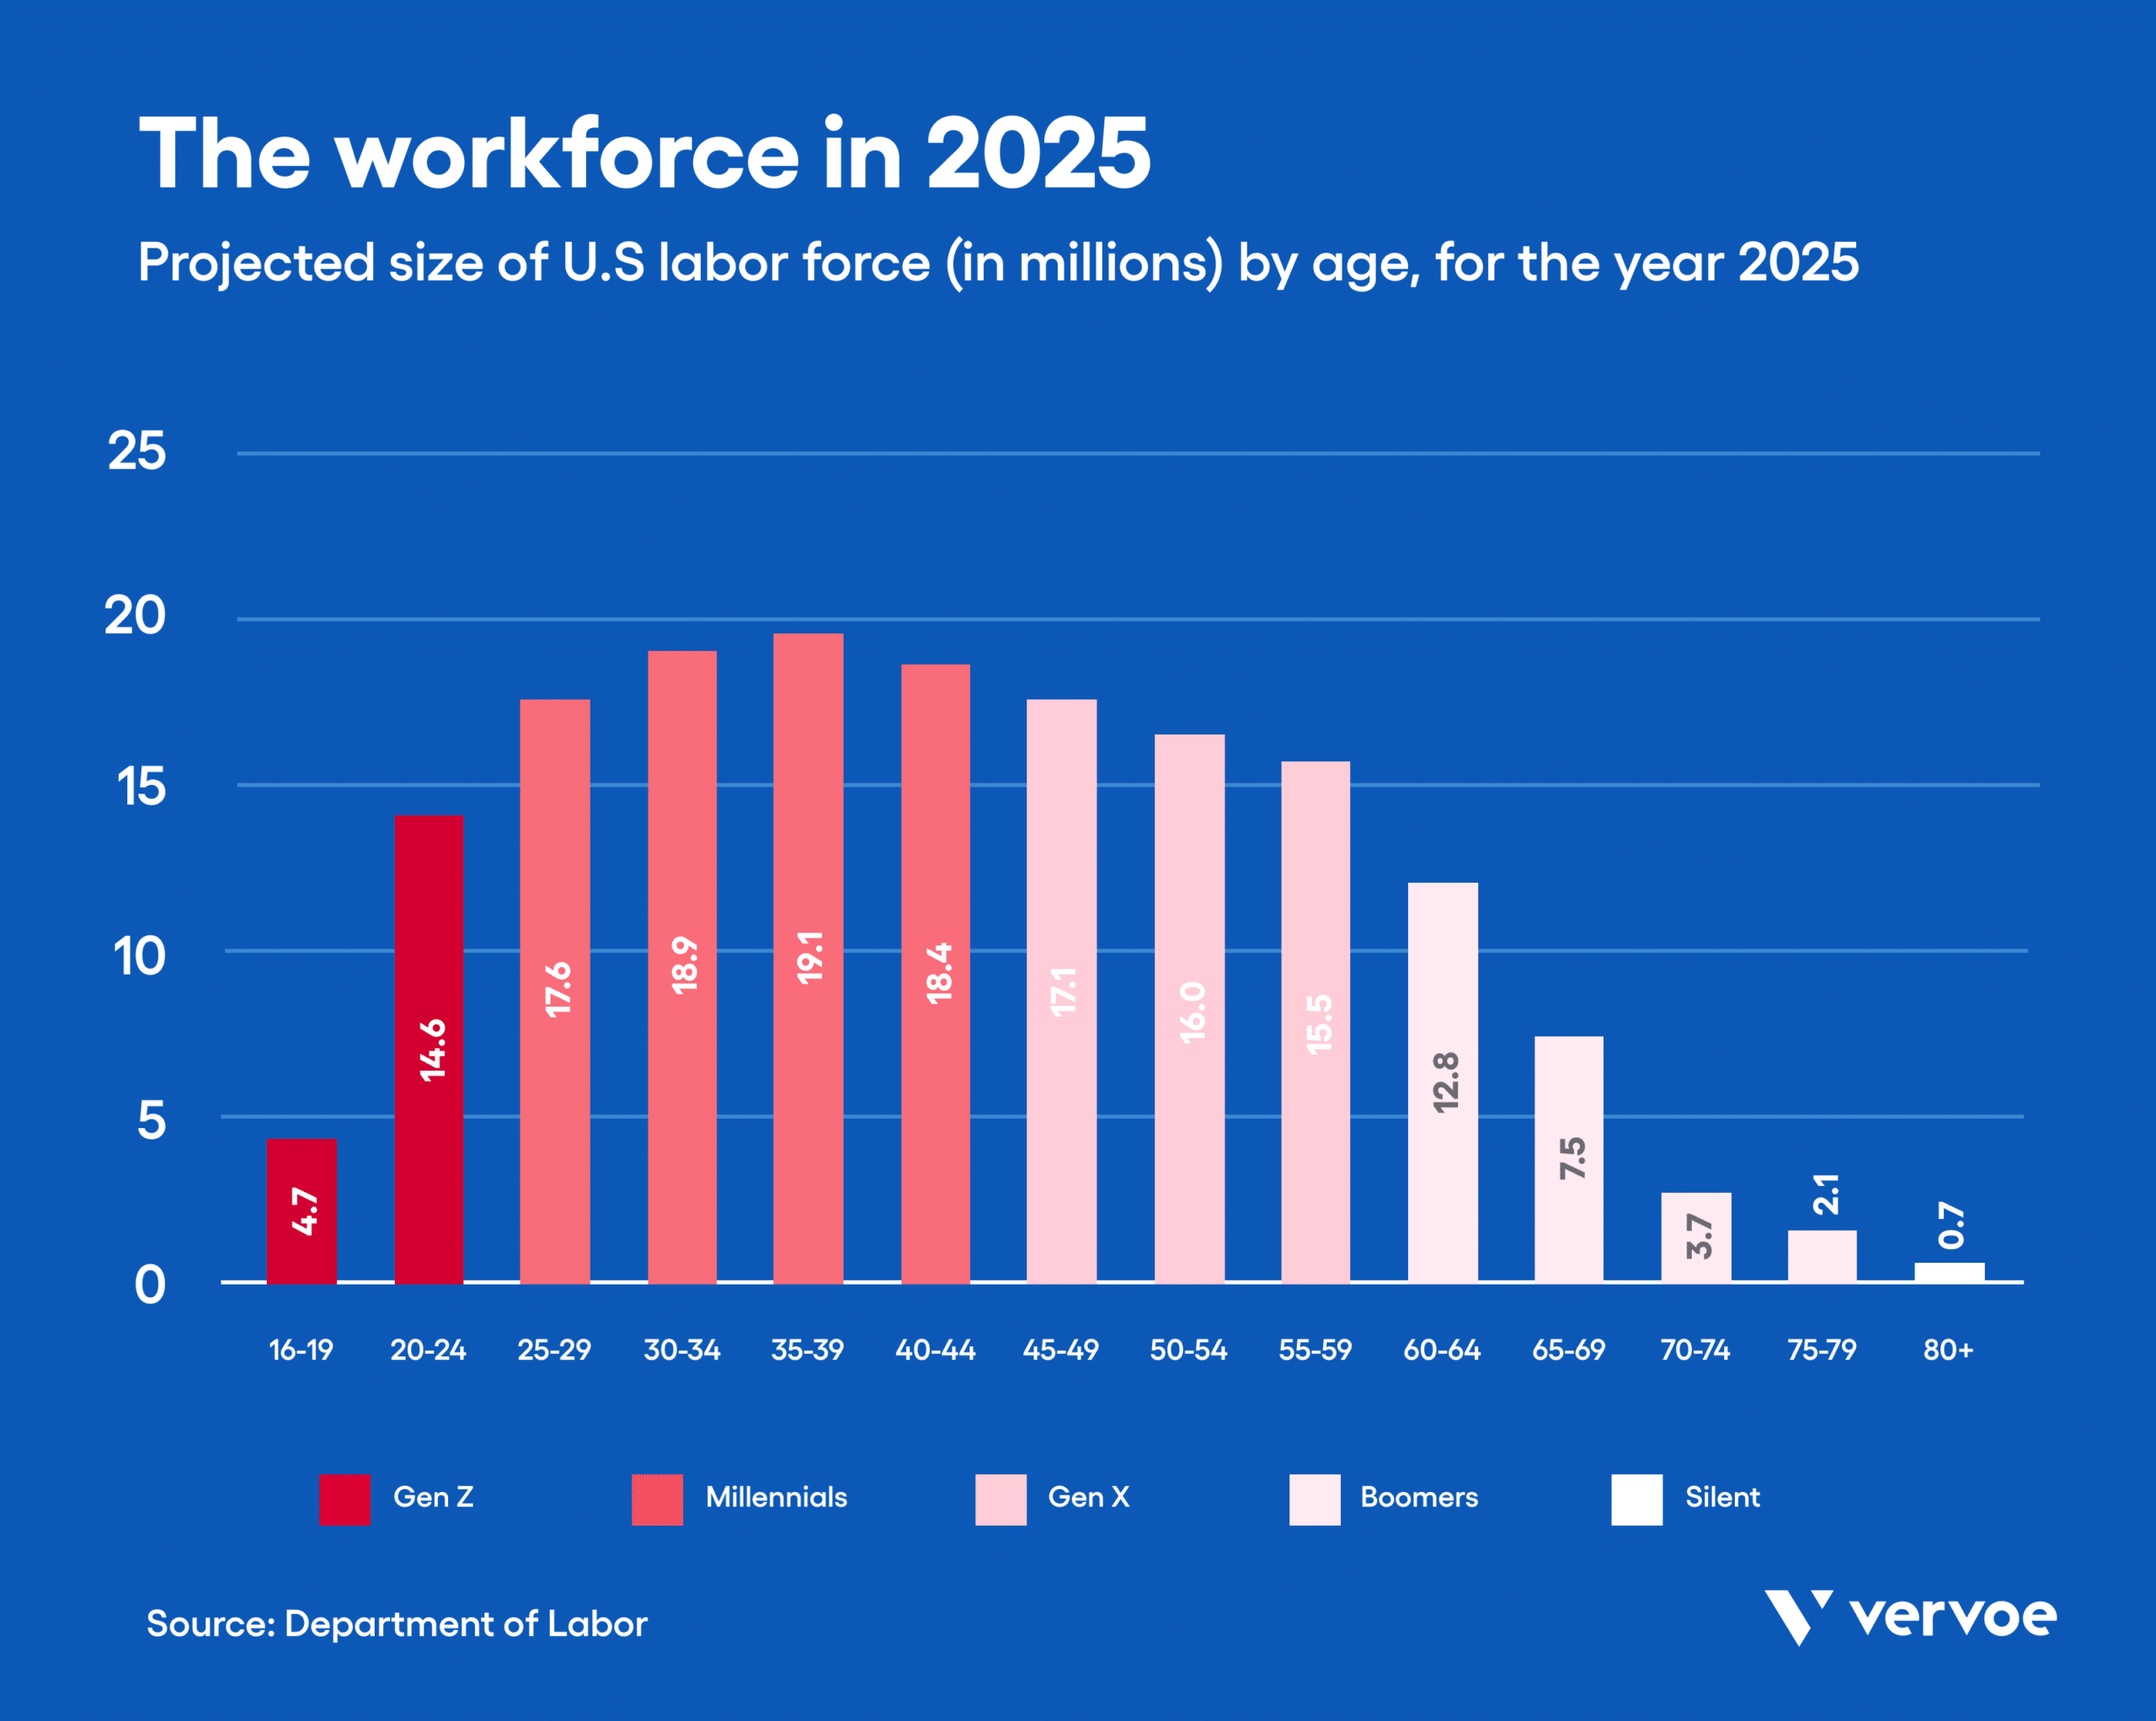 Infographic showing the age demographics of the workforce in 2025